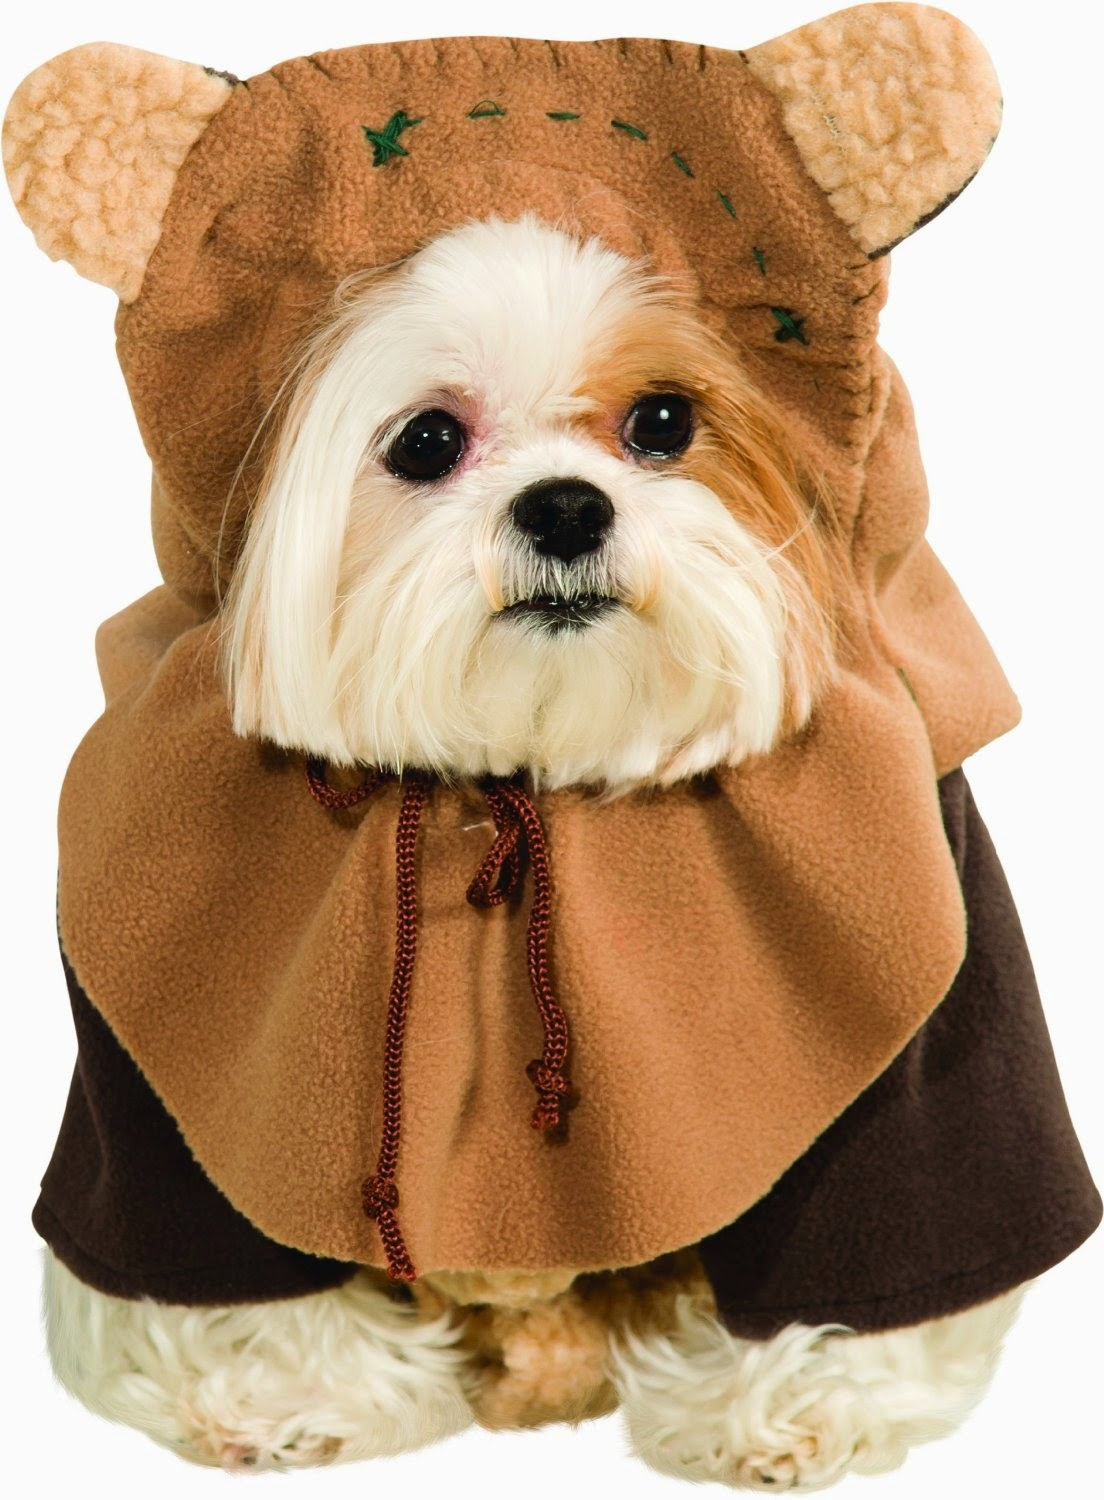 13 most hilarious dog halloween costumes ever! | the modern bark